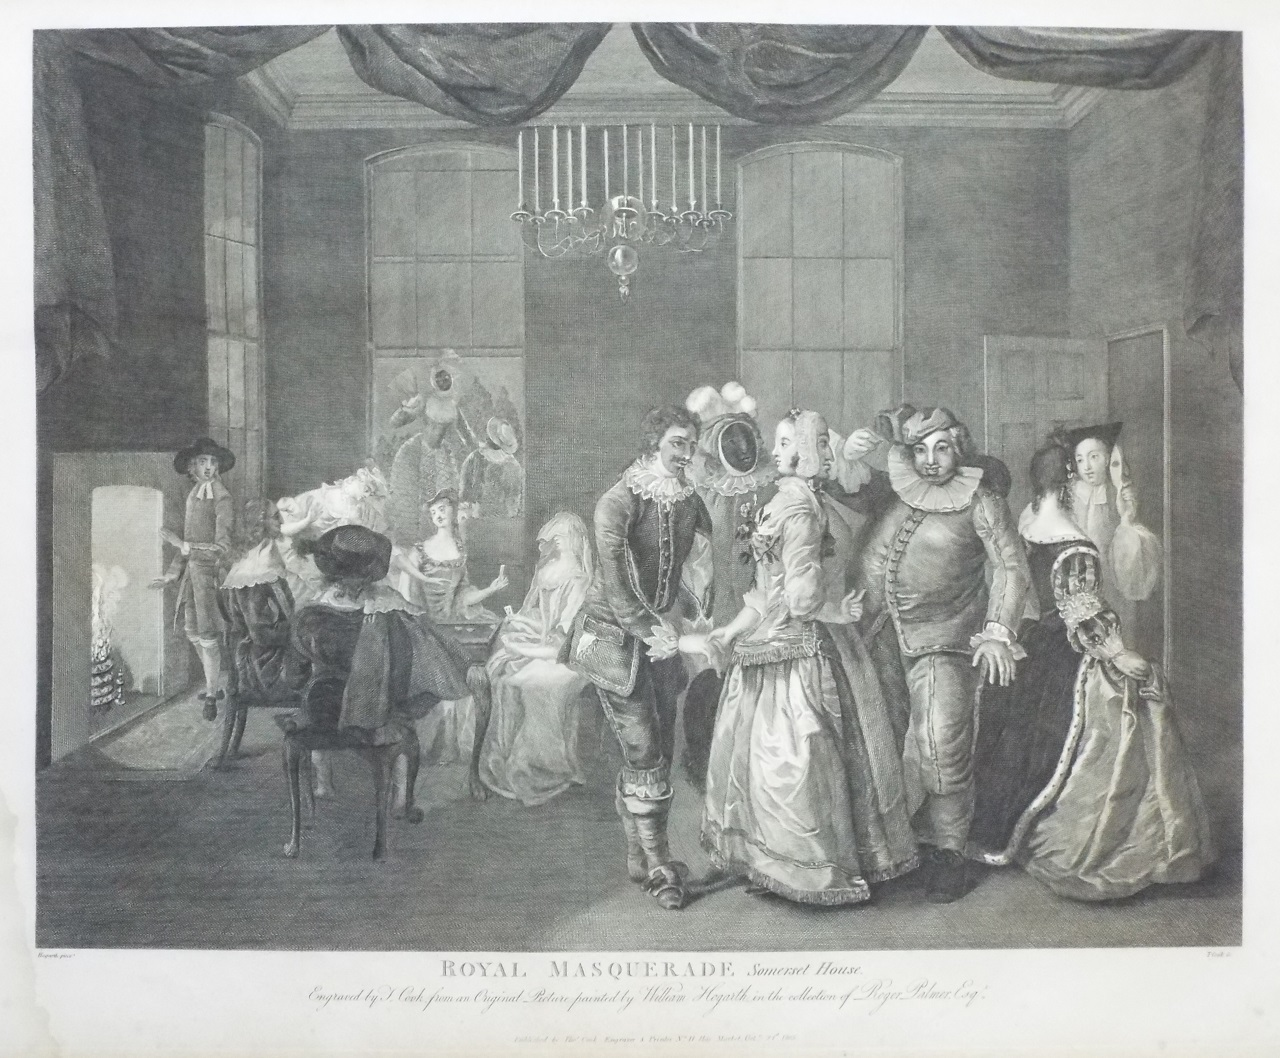 Print - The Royal Masquerade at Somerset House - Cook